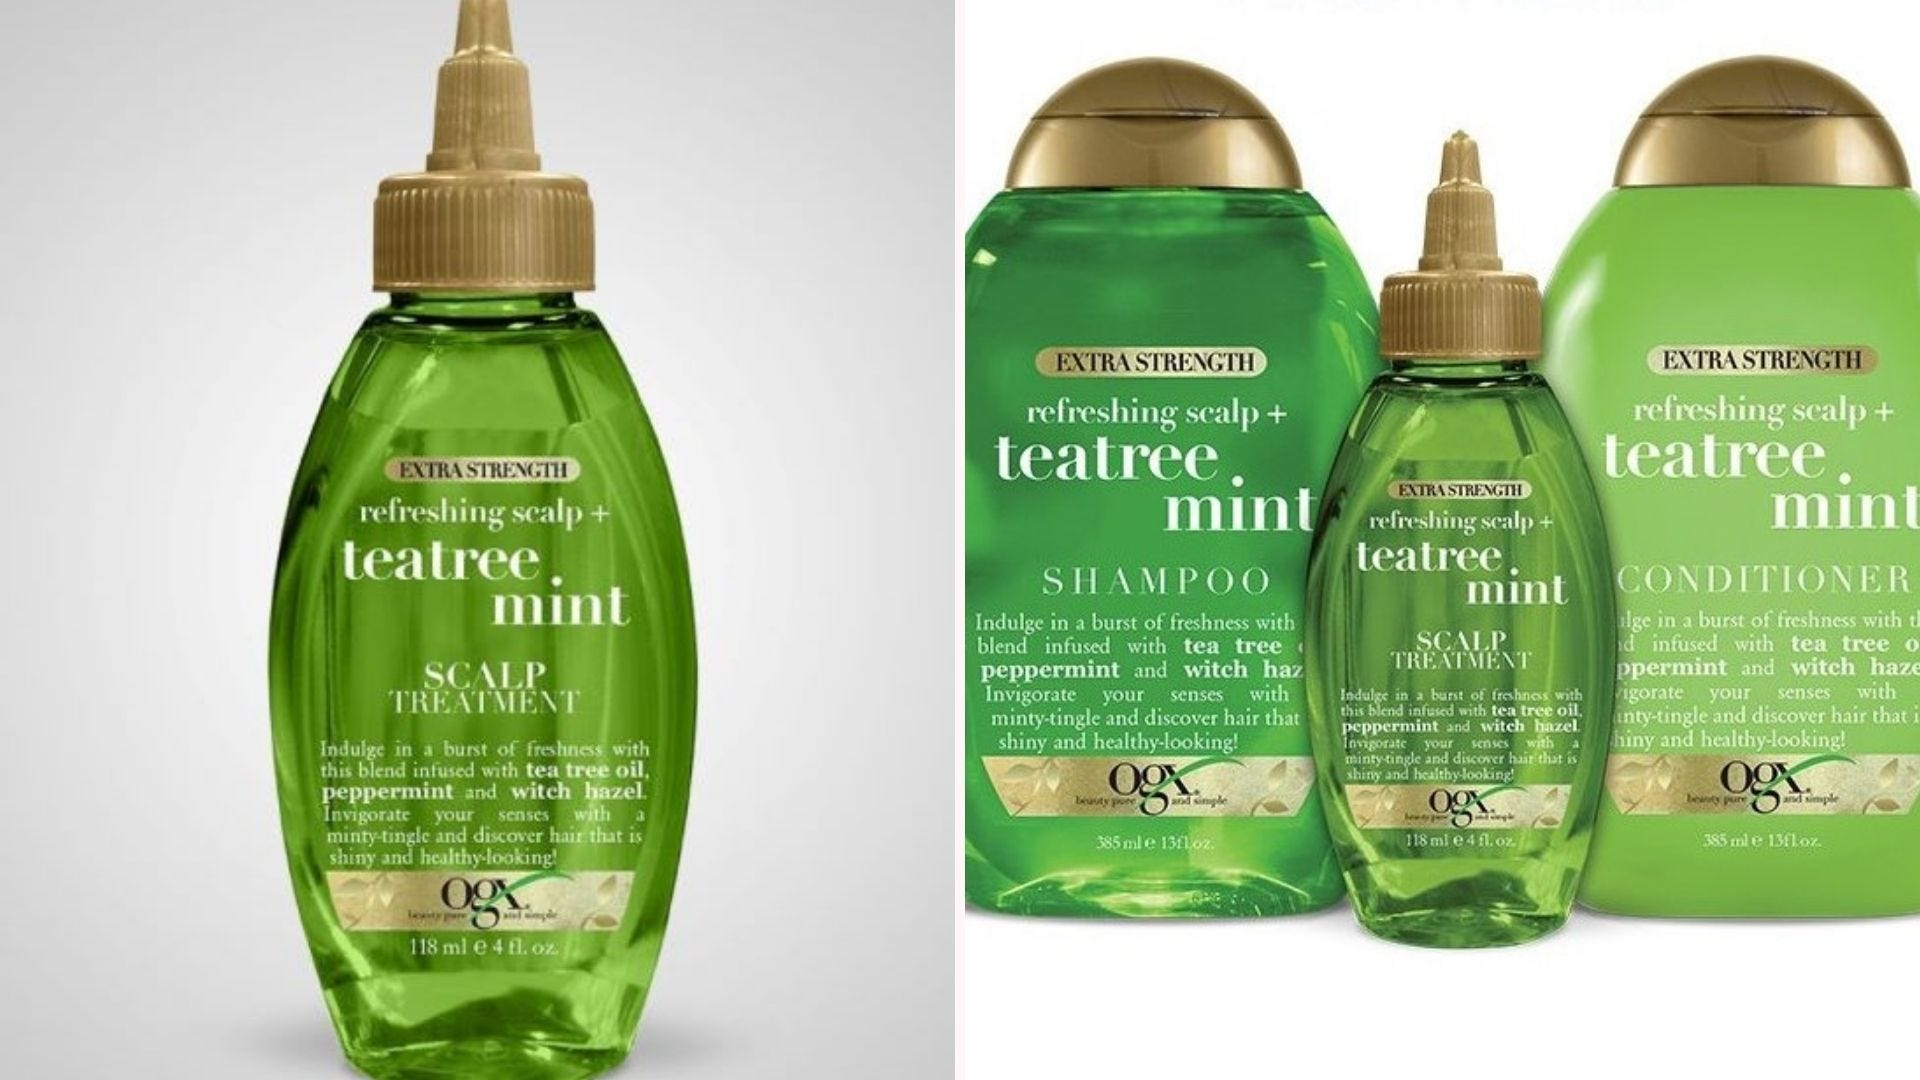 A bottle of OGX Extra Strength Refreshing Scalp Treatment, and the Shampoo and Conditioner.